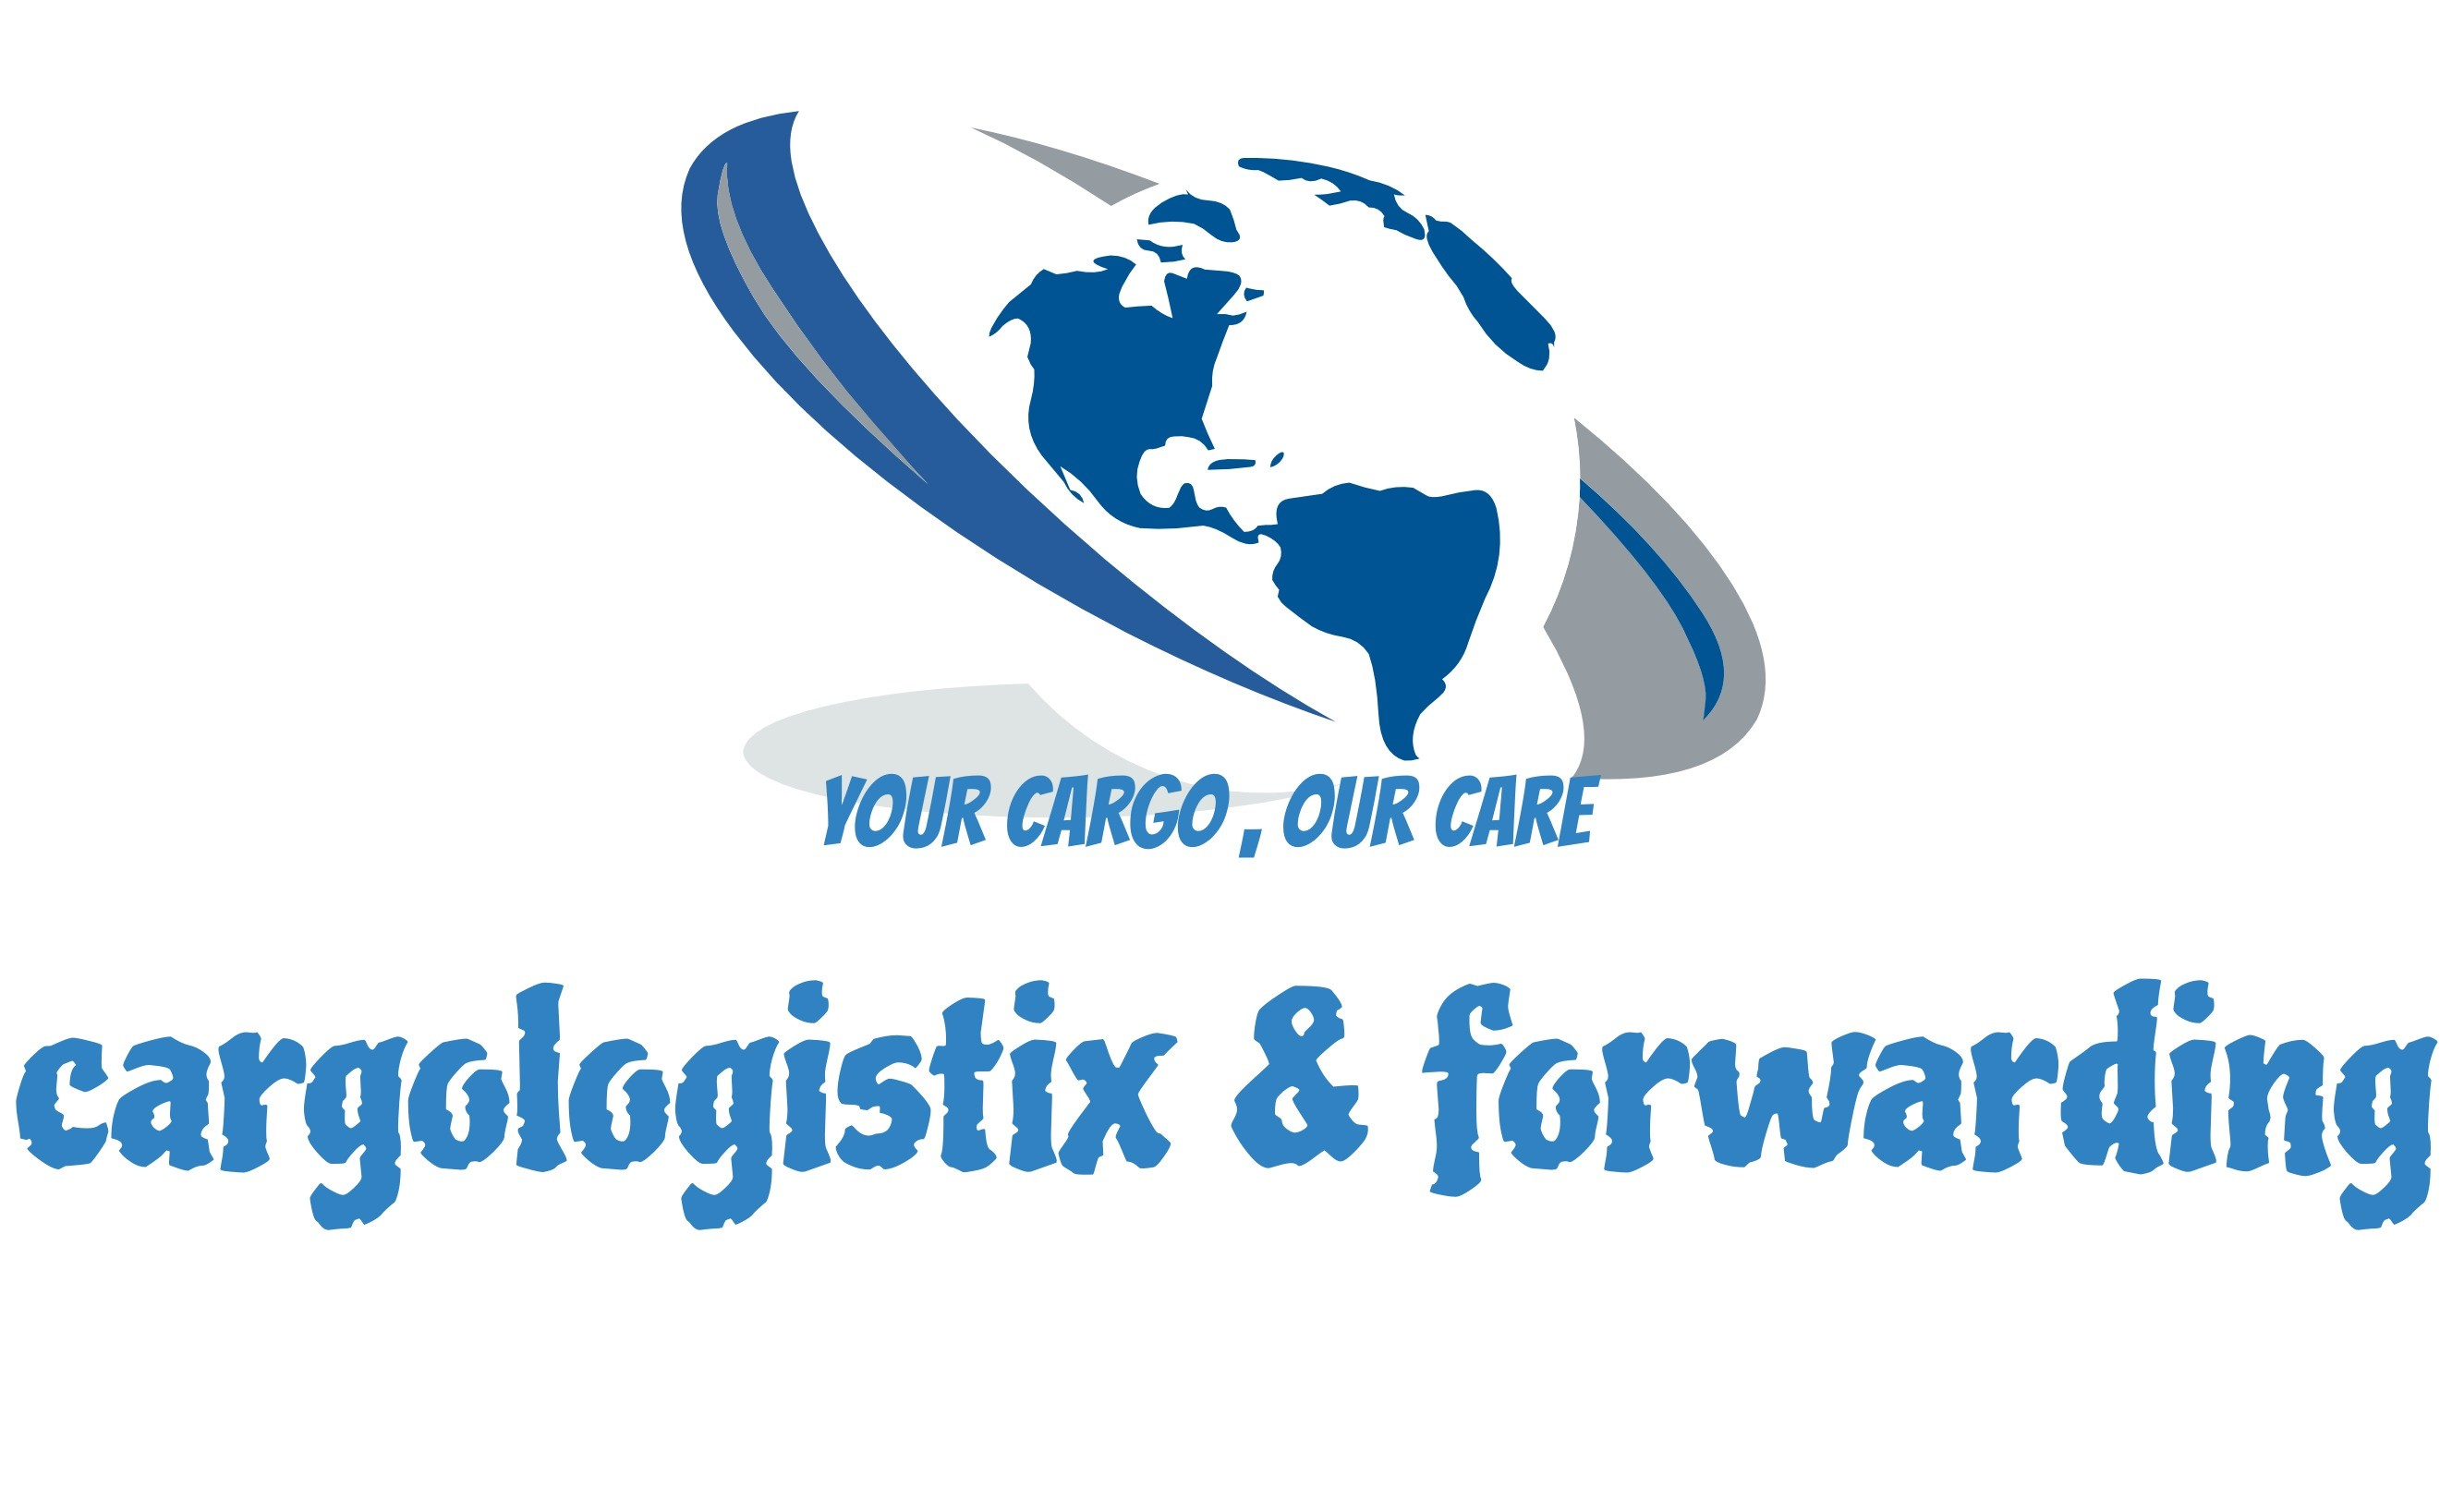 Cargologistix & Forwarding